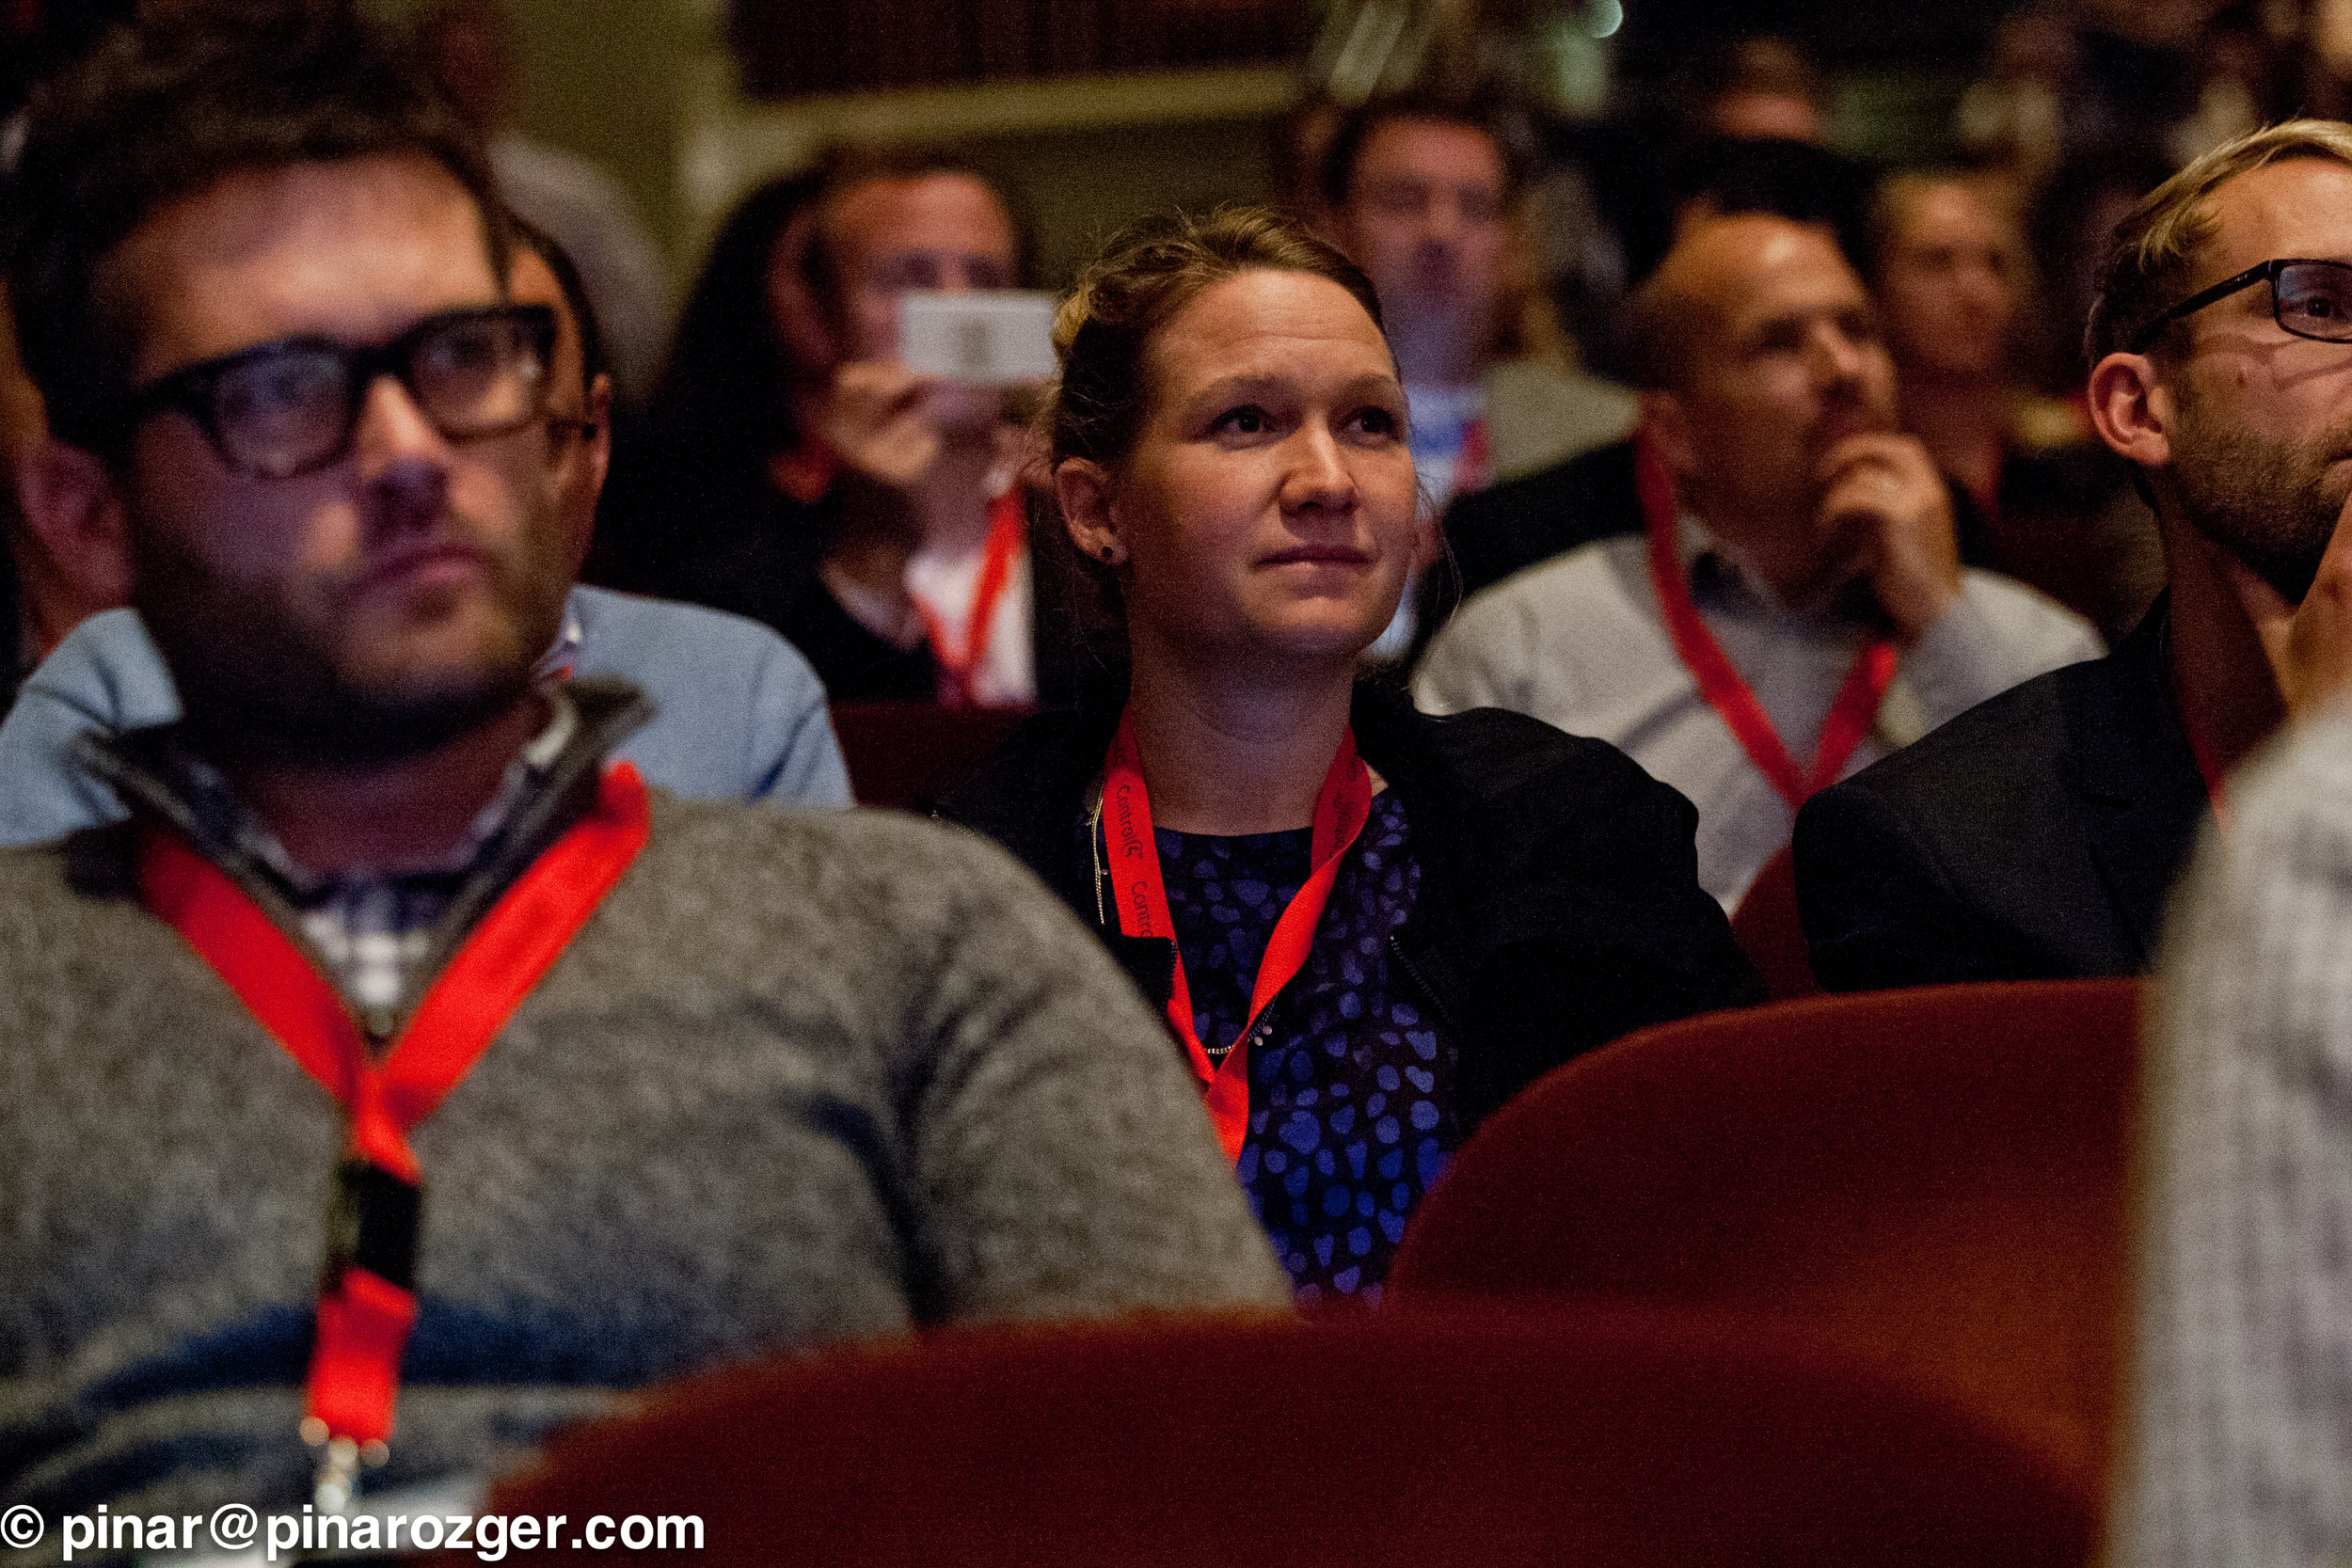 Members of the audience listening to an SKS16 session